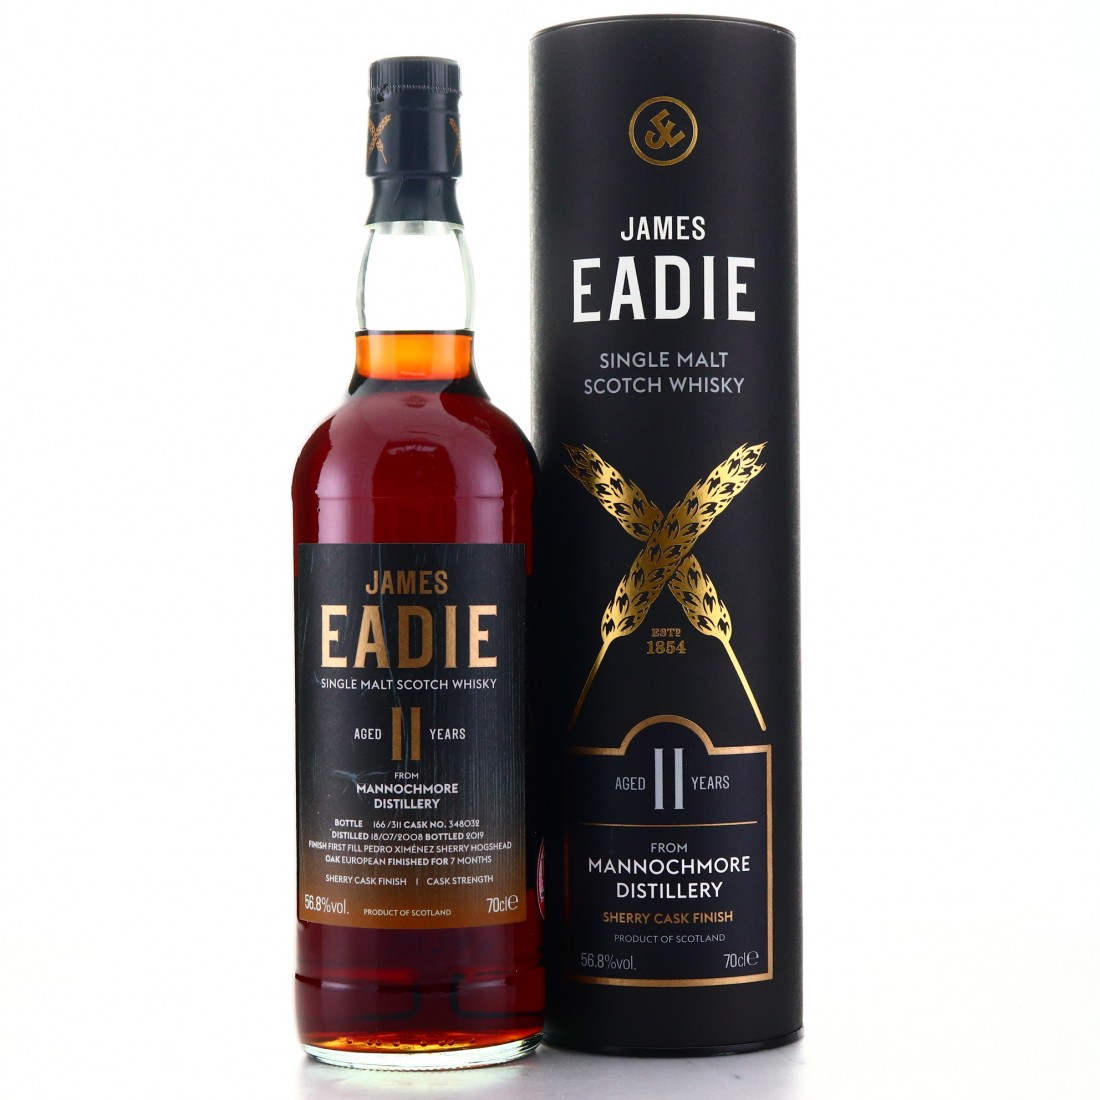 Mannochmore 2008 James Eadie 11 Year Old Sherry Finish